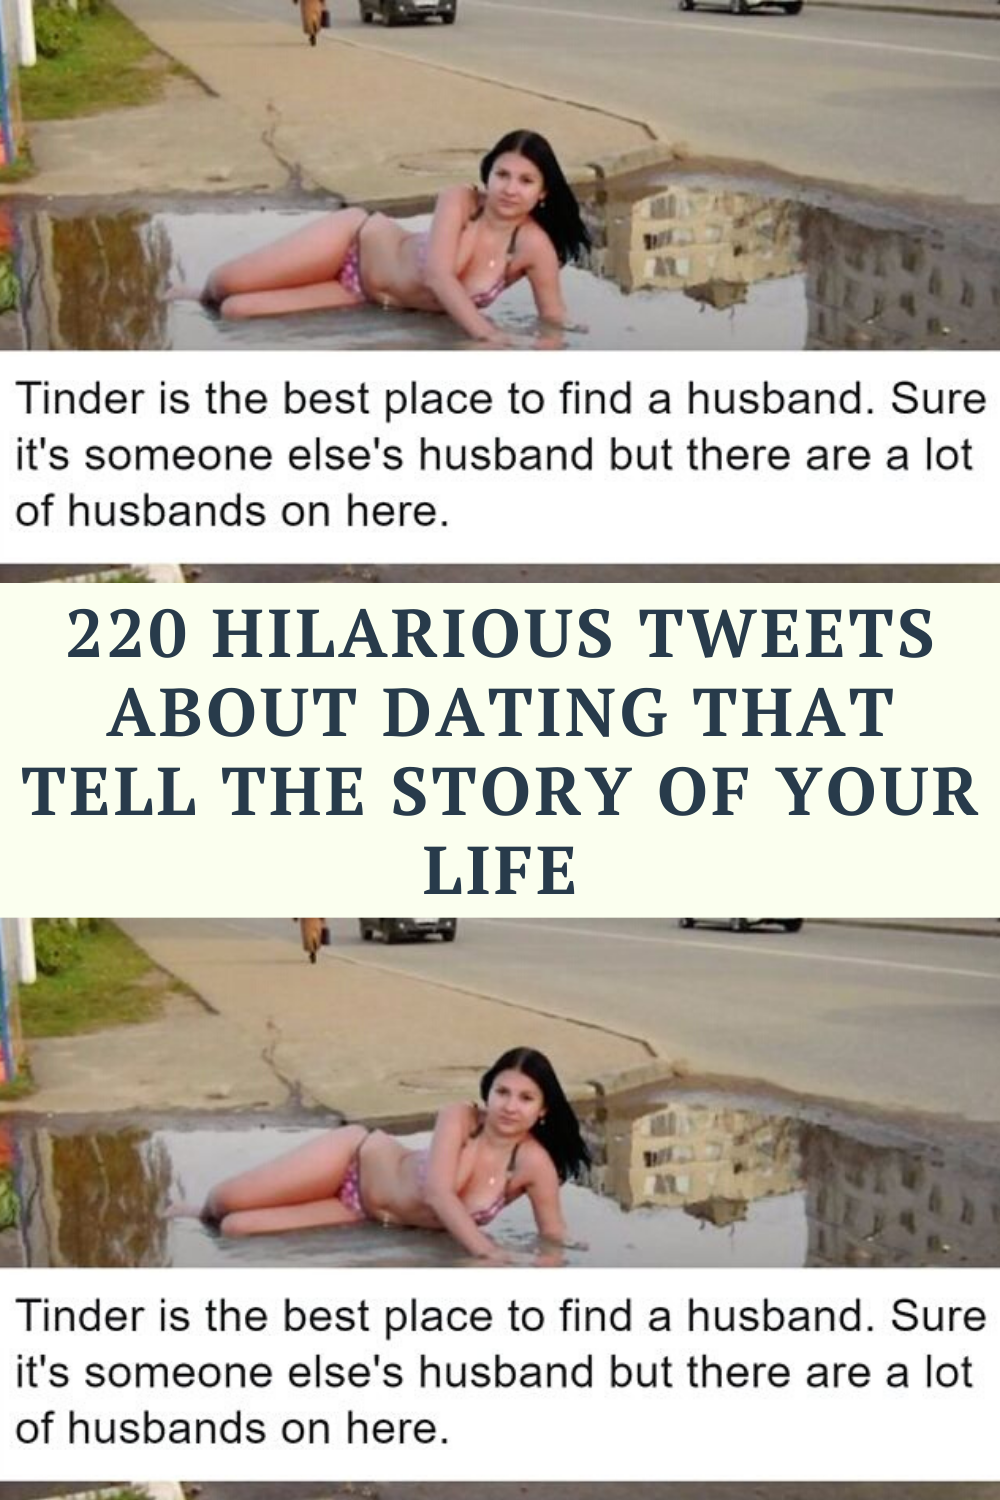 220 Hilarious Tweets About Dating That Tell The Story Of Your Life